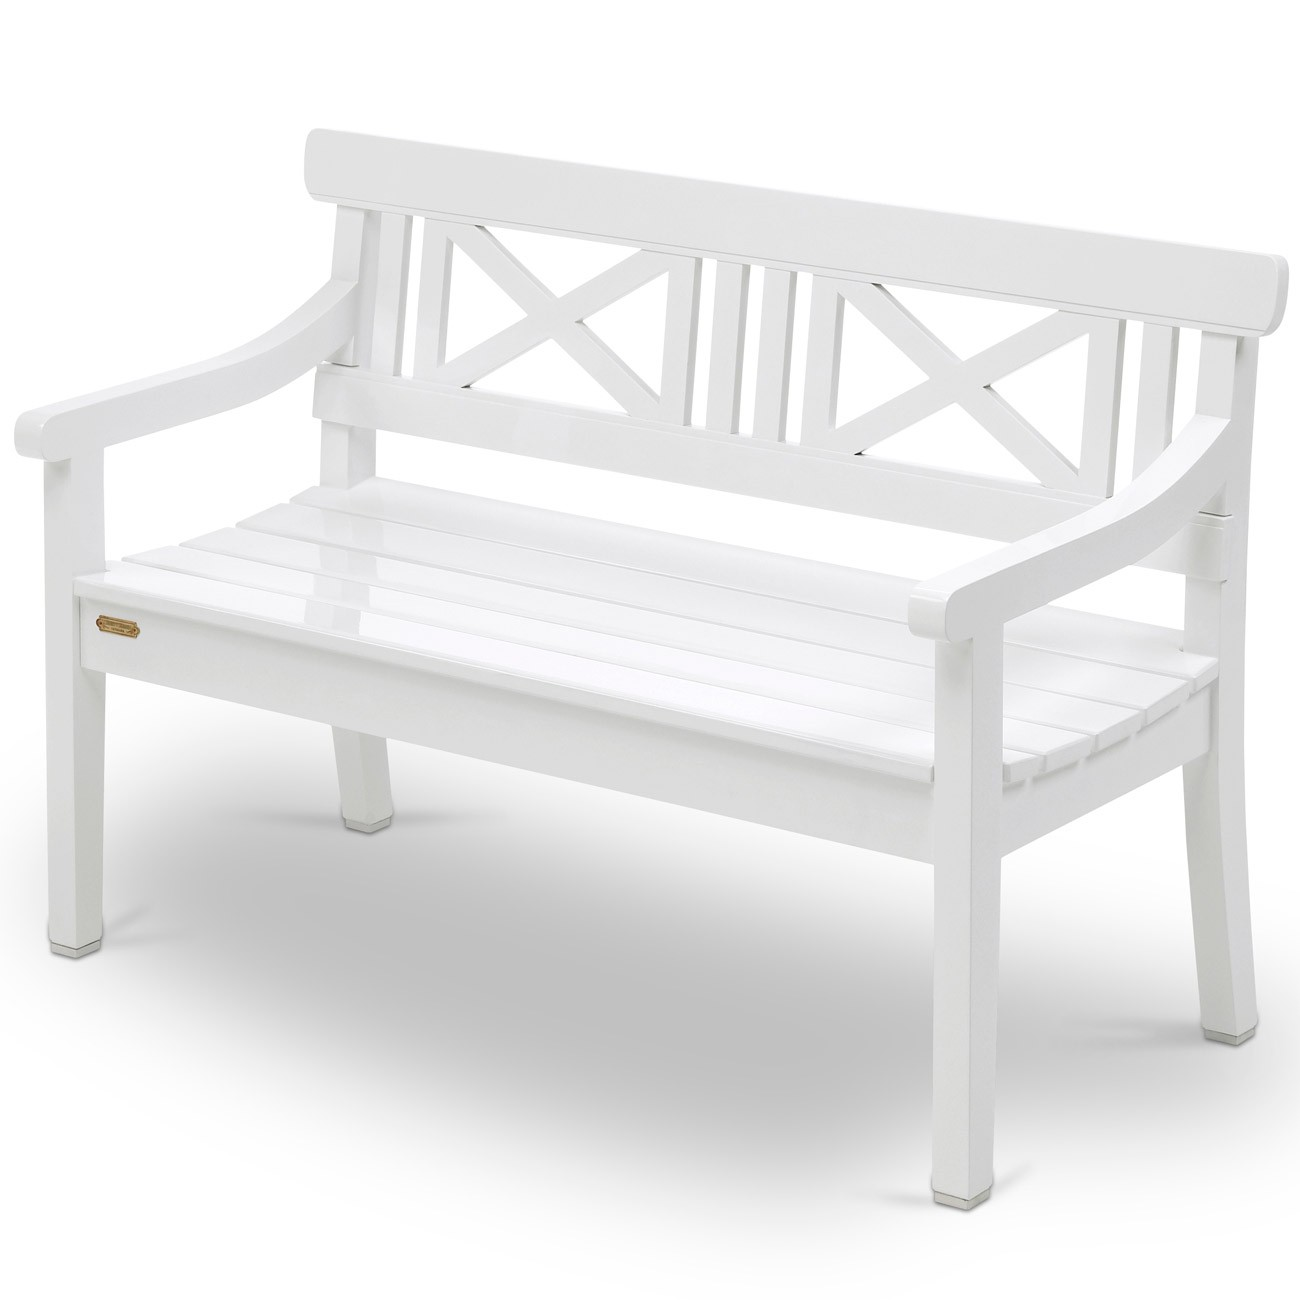 skagerak drachmann bank 120 cm weiss gartenbank s1100505 ebay. Black Bedroom Furniture Sets. Home Design Ideas